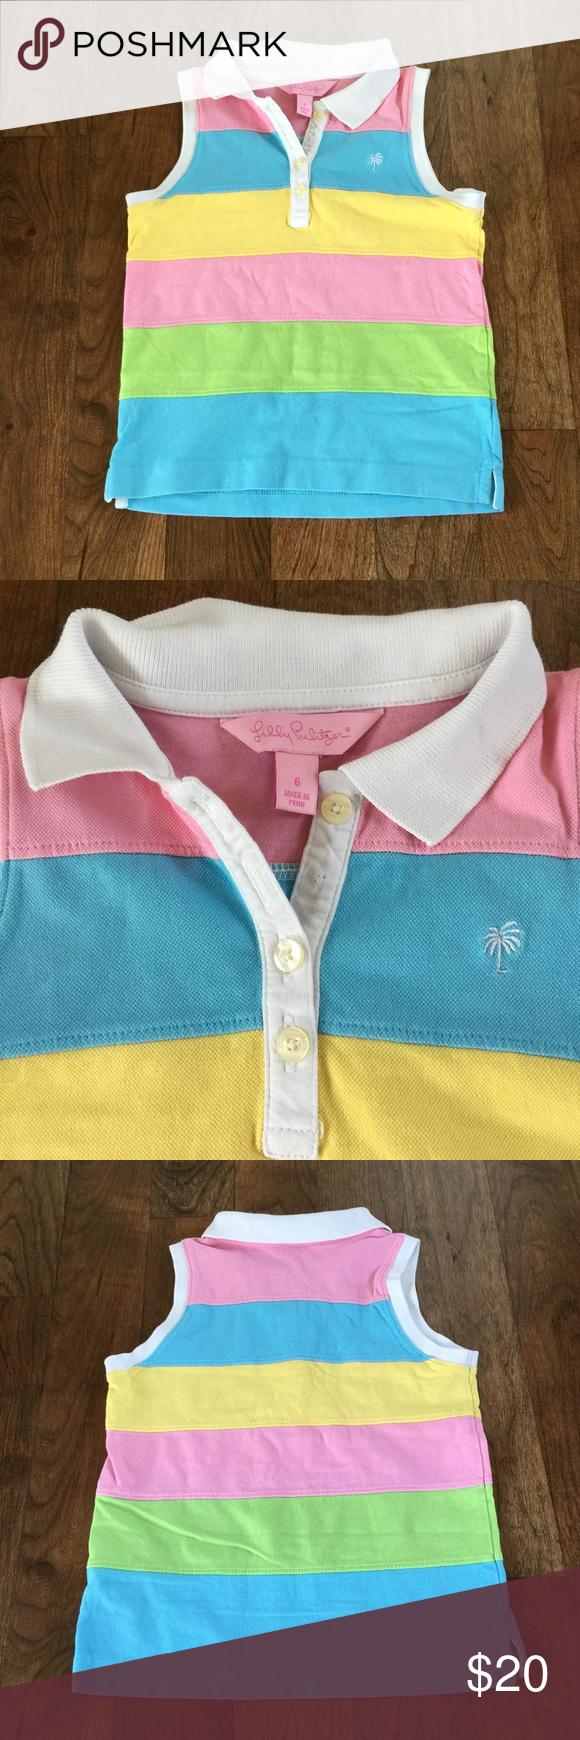 Lilly Pulitzer Girls Top Size 6 Lilly Pulitzer Girls Top. Excellent condition! Blue, yellow, pink, and green with white collar and buttons. Super cute! Lilly Pulitzer Dresses